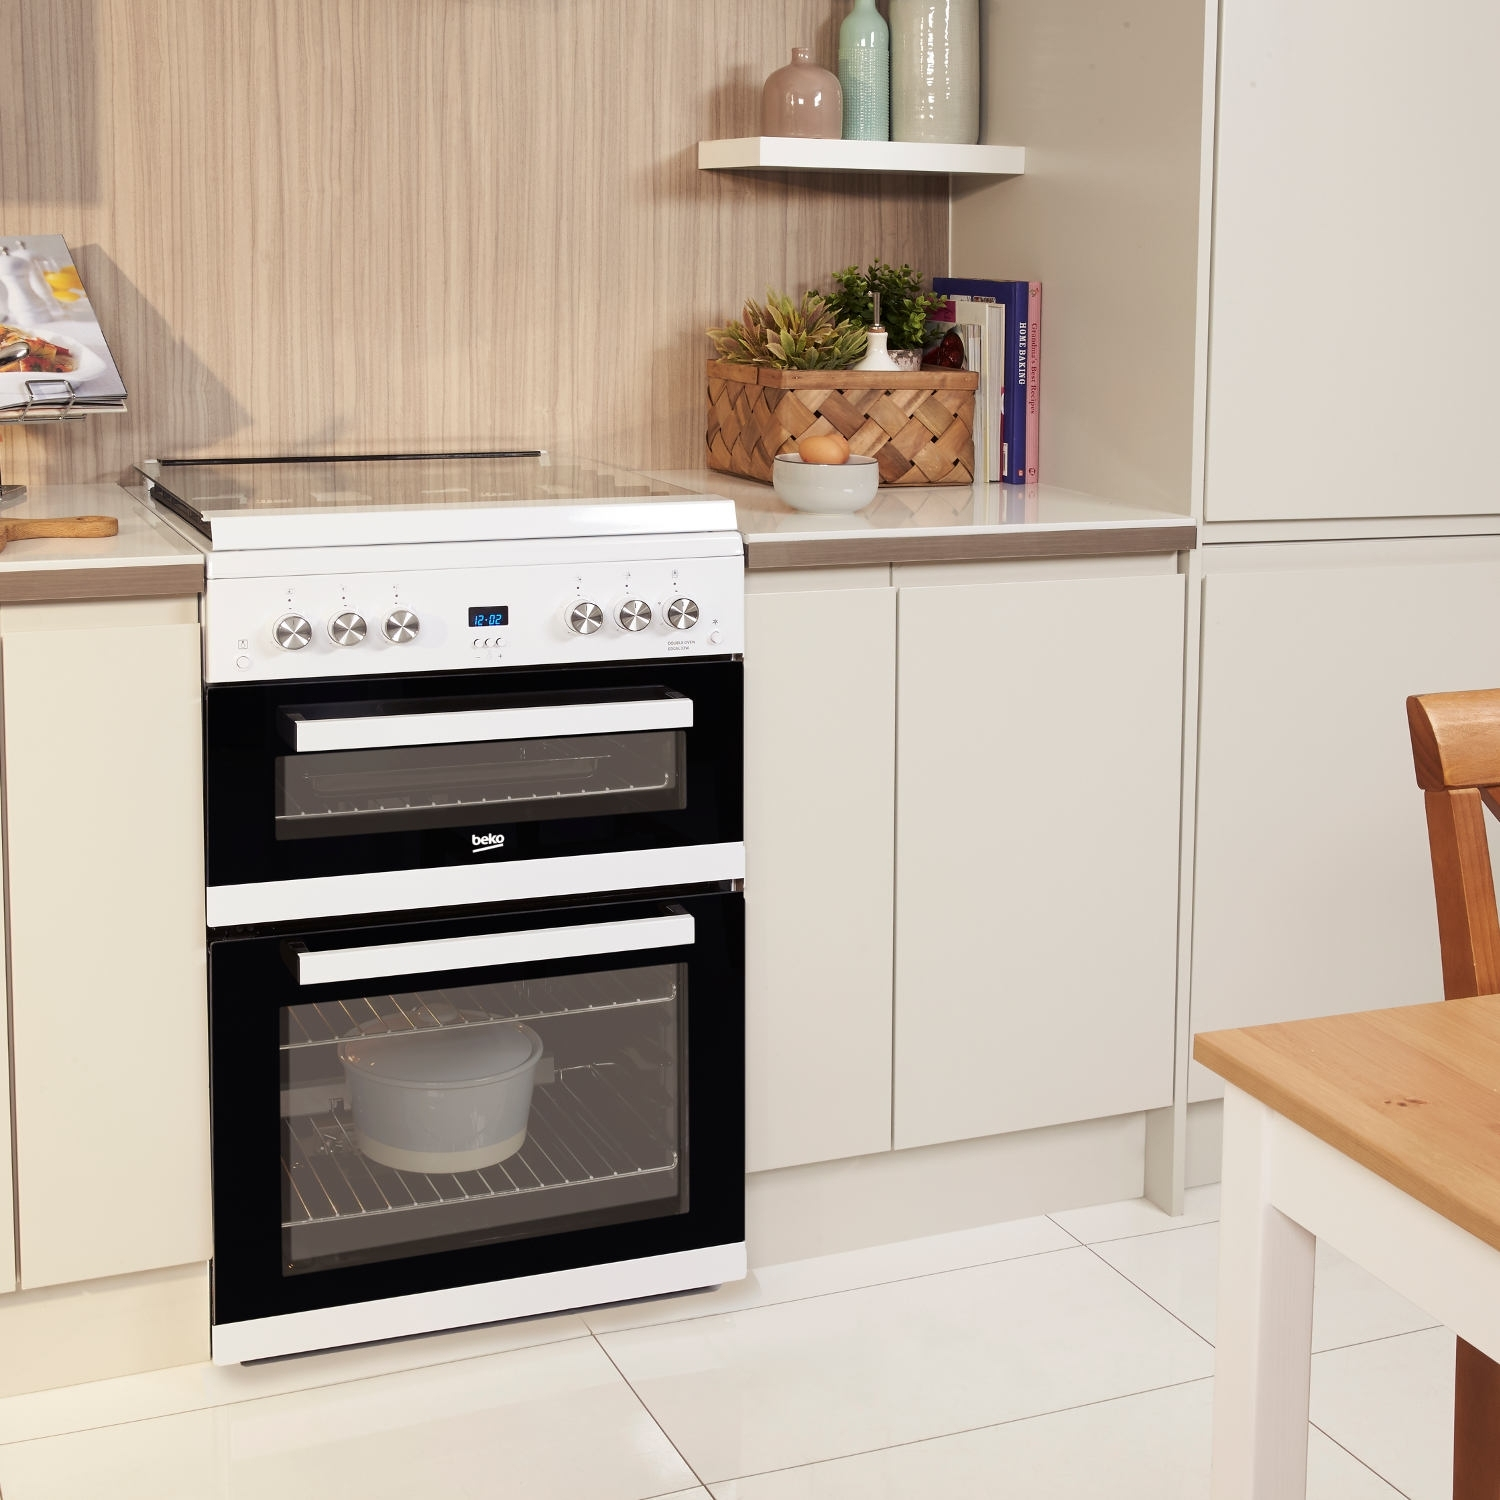 Beko 60cm Double Oven Gas Cooker with Glass Lid - White - 4